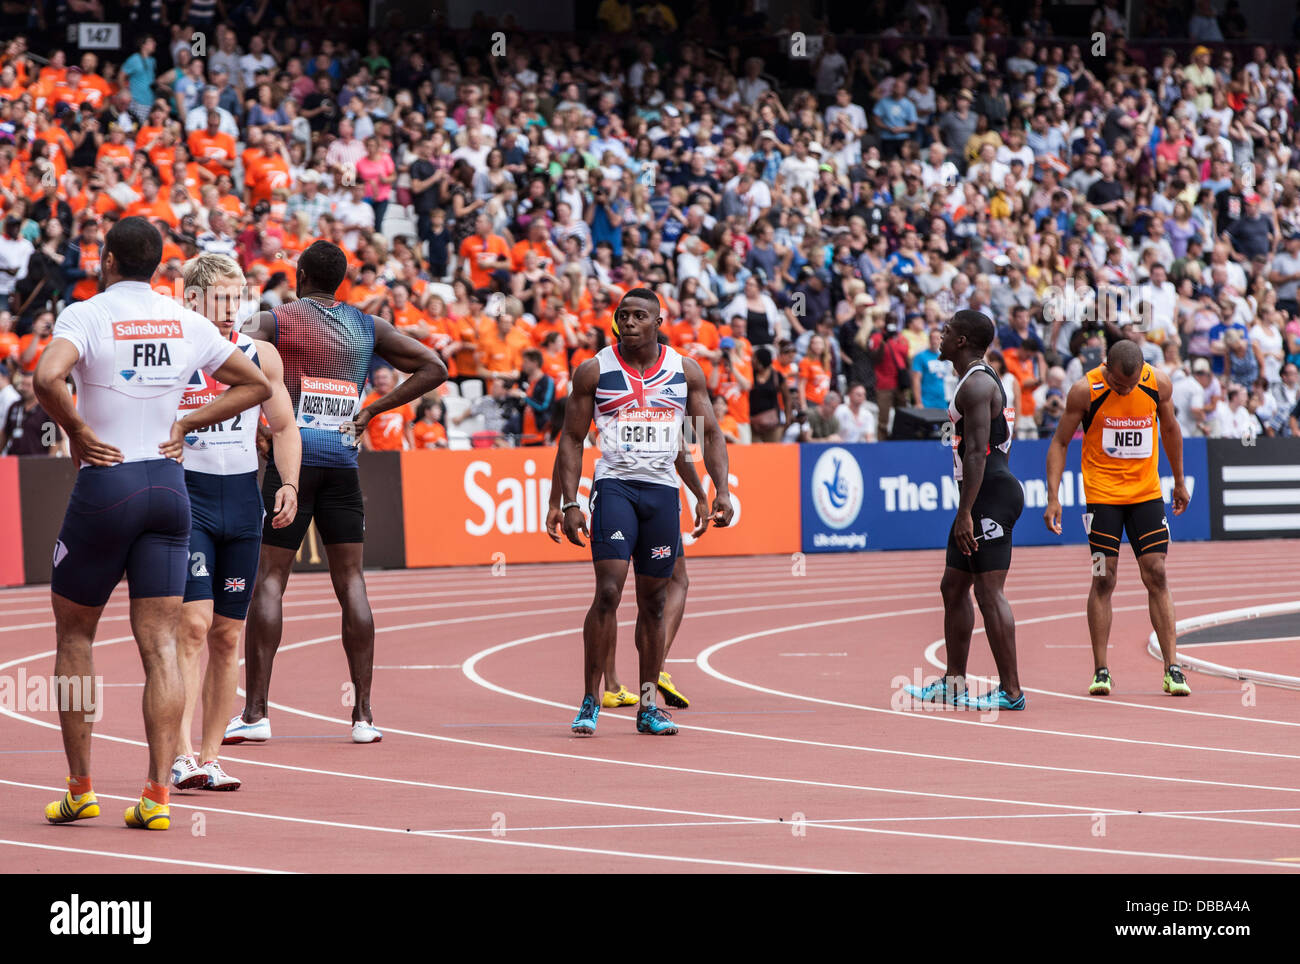 London, UK. 27th July, 2013. 4x100m mens relay in the Olympic Stadium, Anniversary Games British Athletics in London. - Stock Image